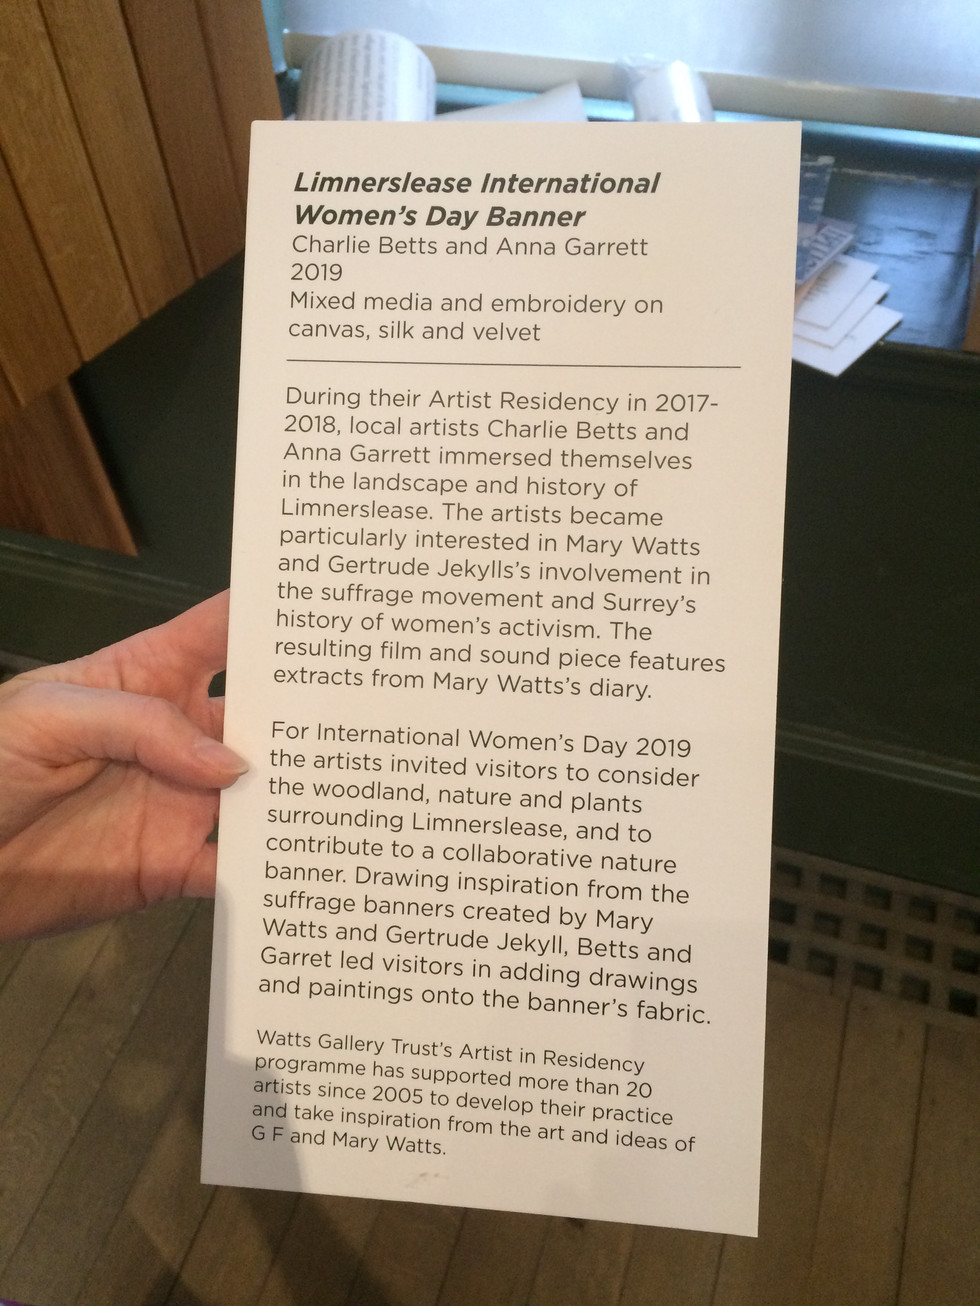 International Women's Day Banner, Raising the Banner exhibition, Mary Watts Gallery, part of Limnerslease Residency, Watts Gallery Artist Village, 2019